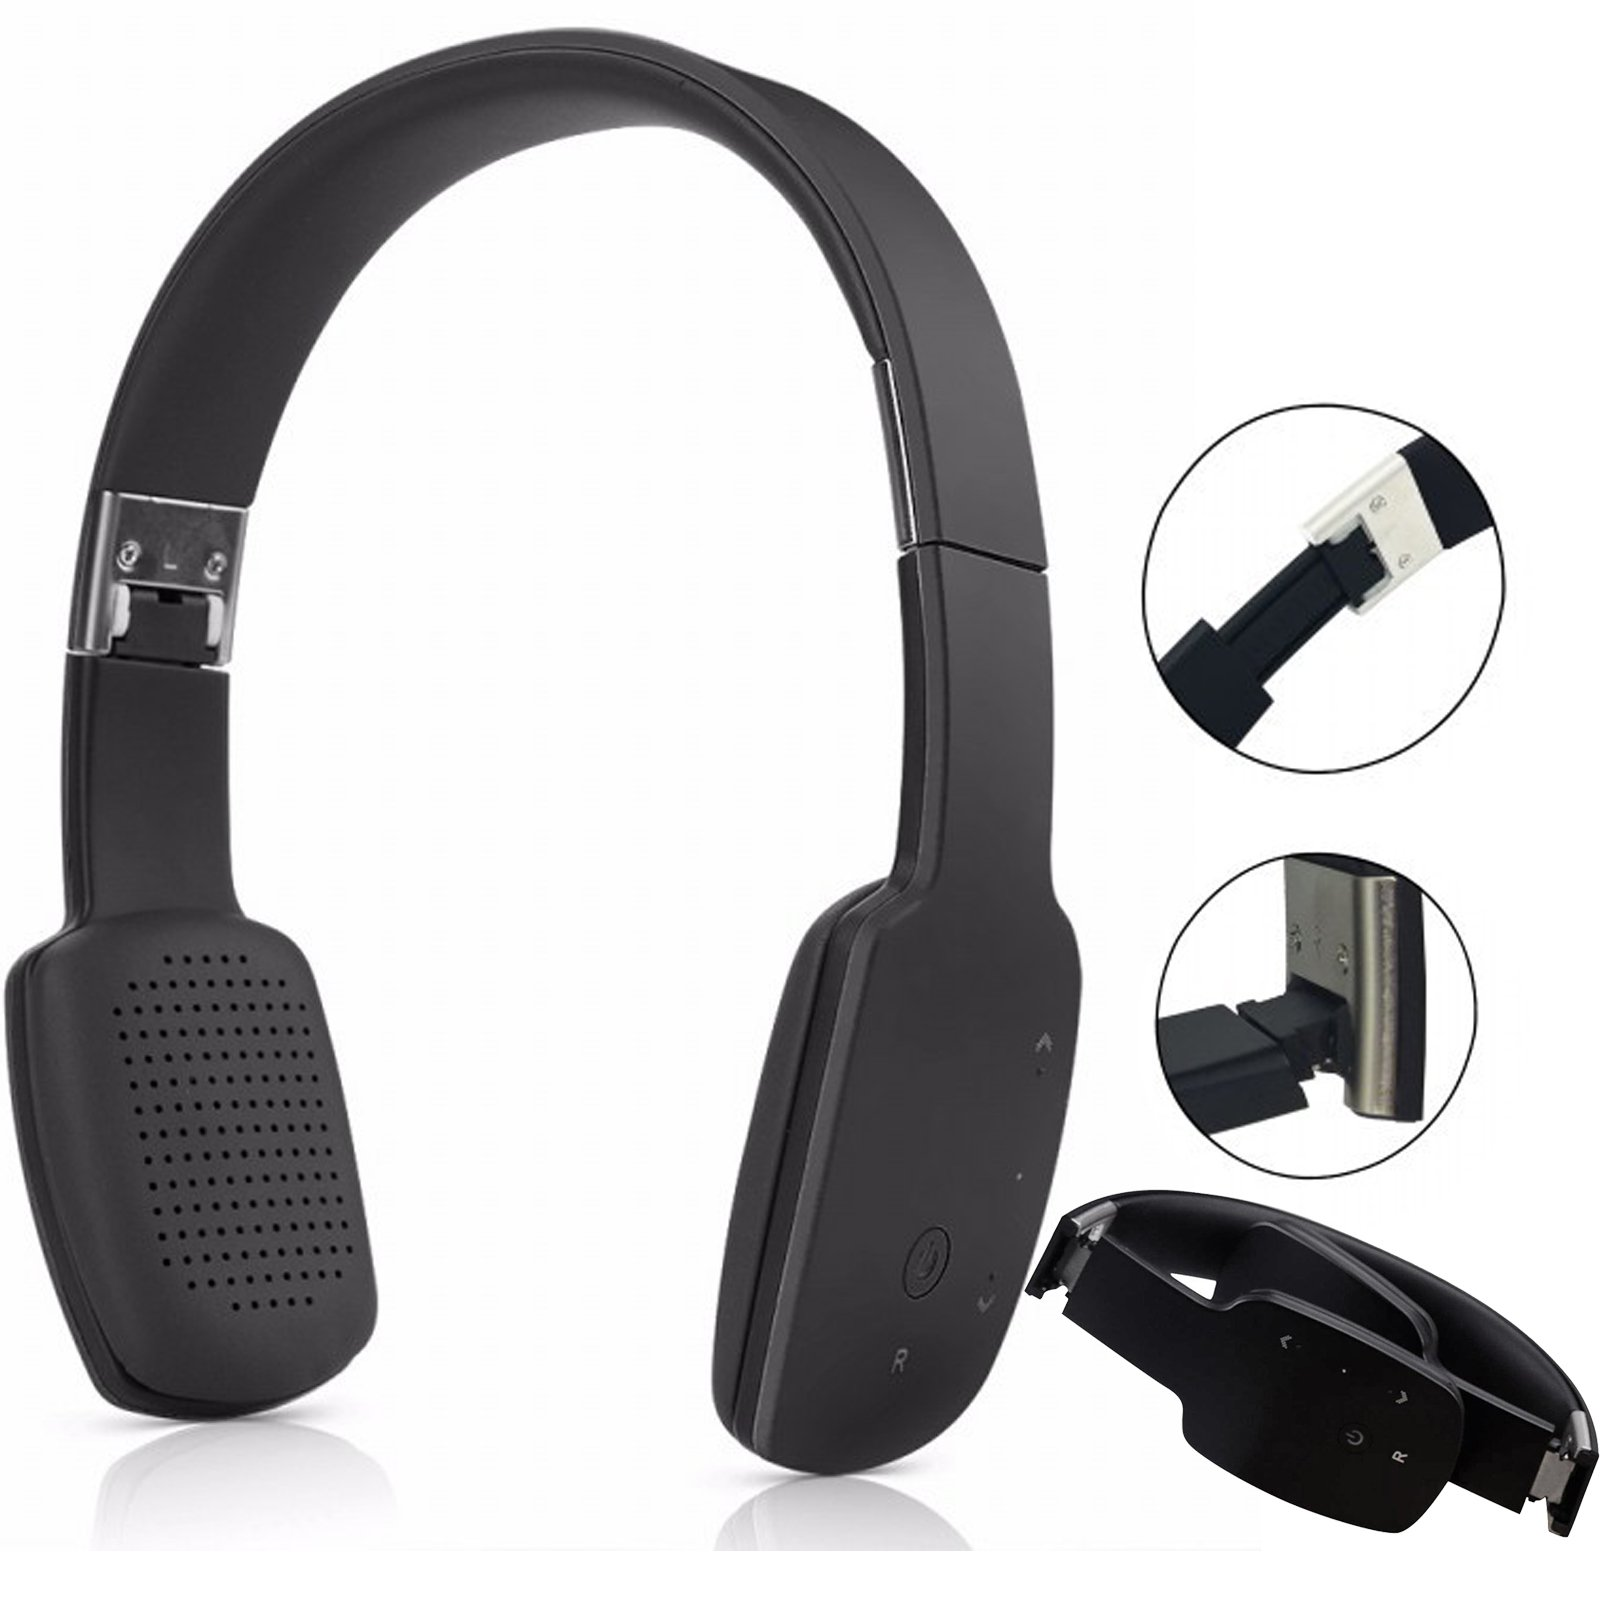 Auriculares Bluetooth Headset Stereo Inalambrico Plegable Con Cable Headband Earphone con Mic Handsfree para Cellphones